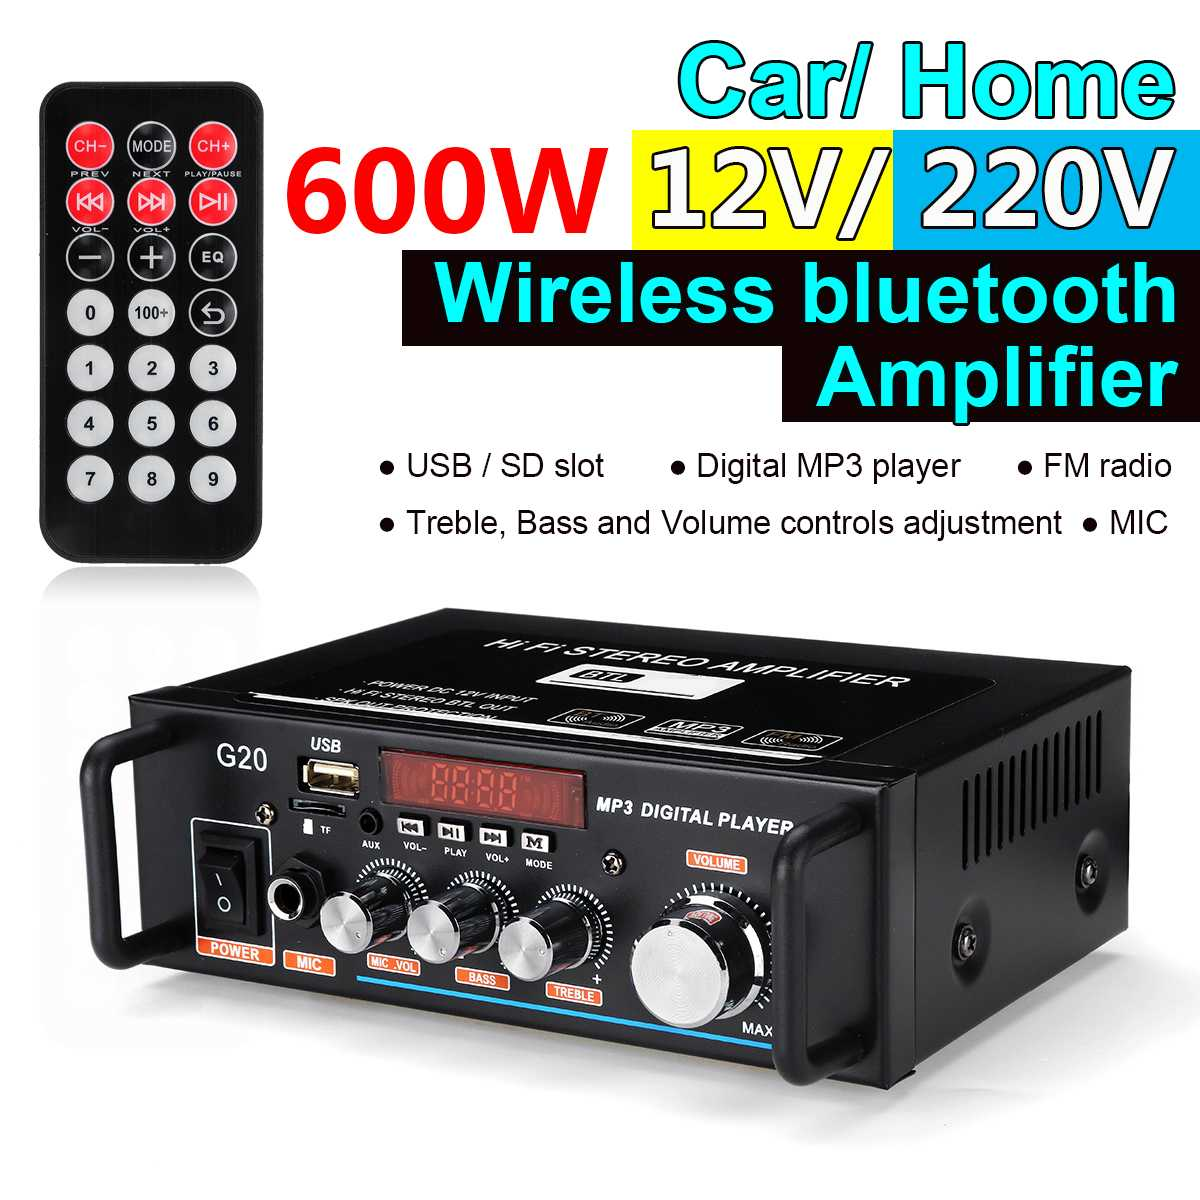 300W+300W Home Car Mini 220V/12V Bluetooth Audio Stereo Amplifier HIFI USB FM SD MIC Port Full Function Infrared Control